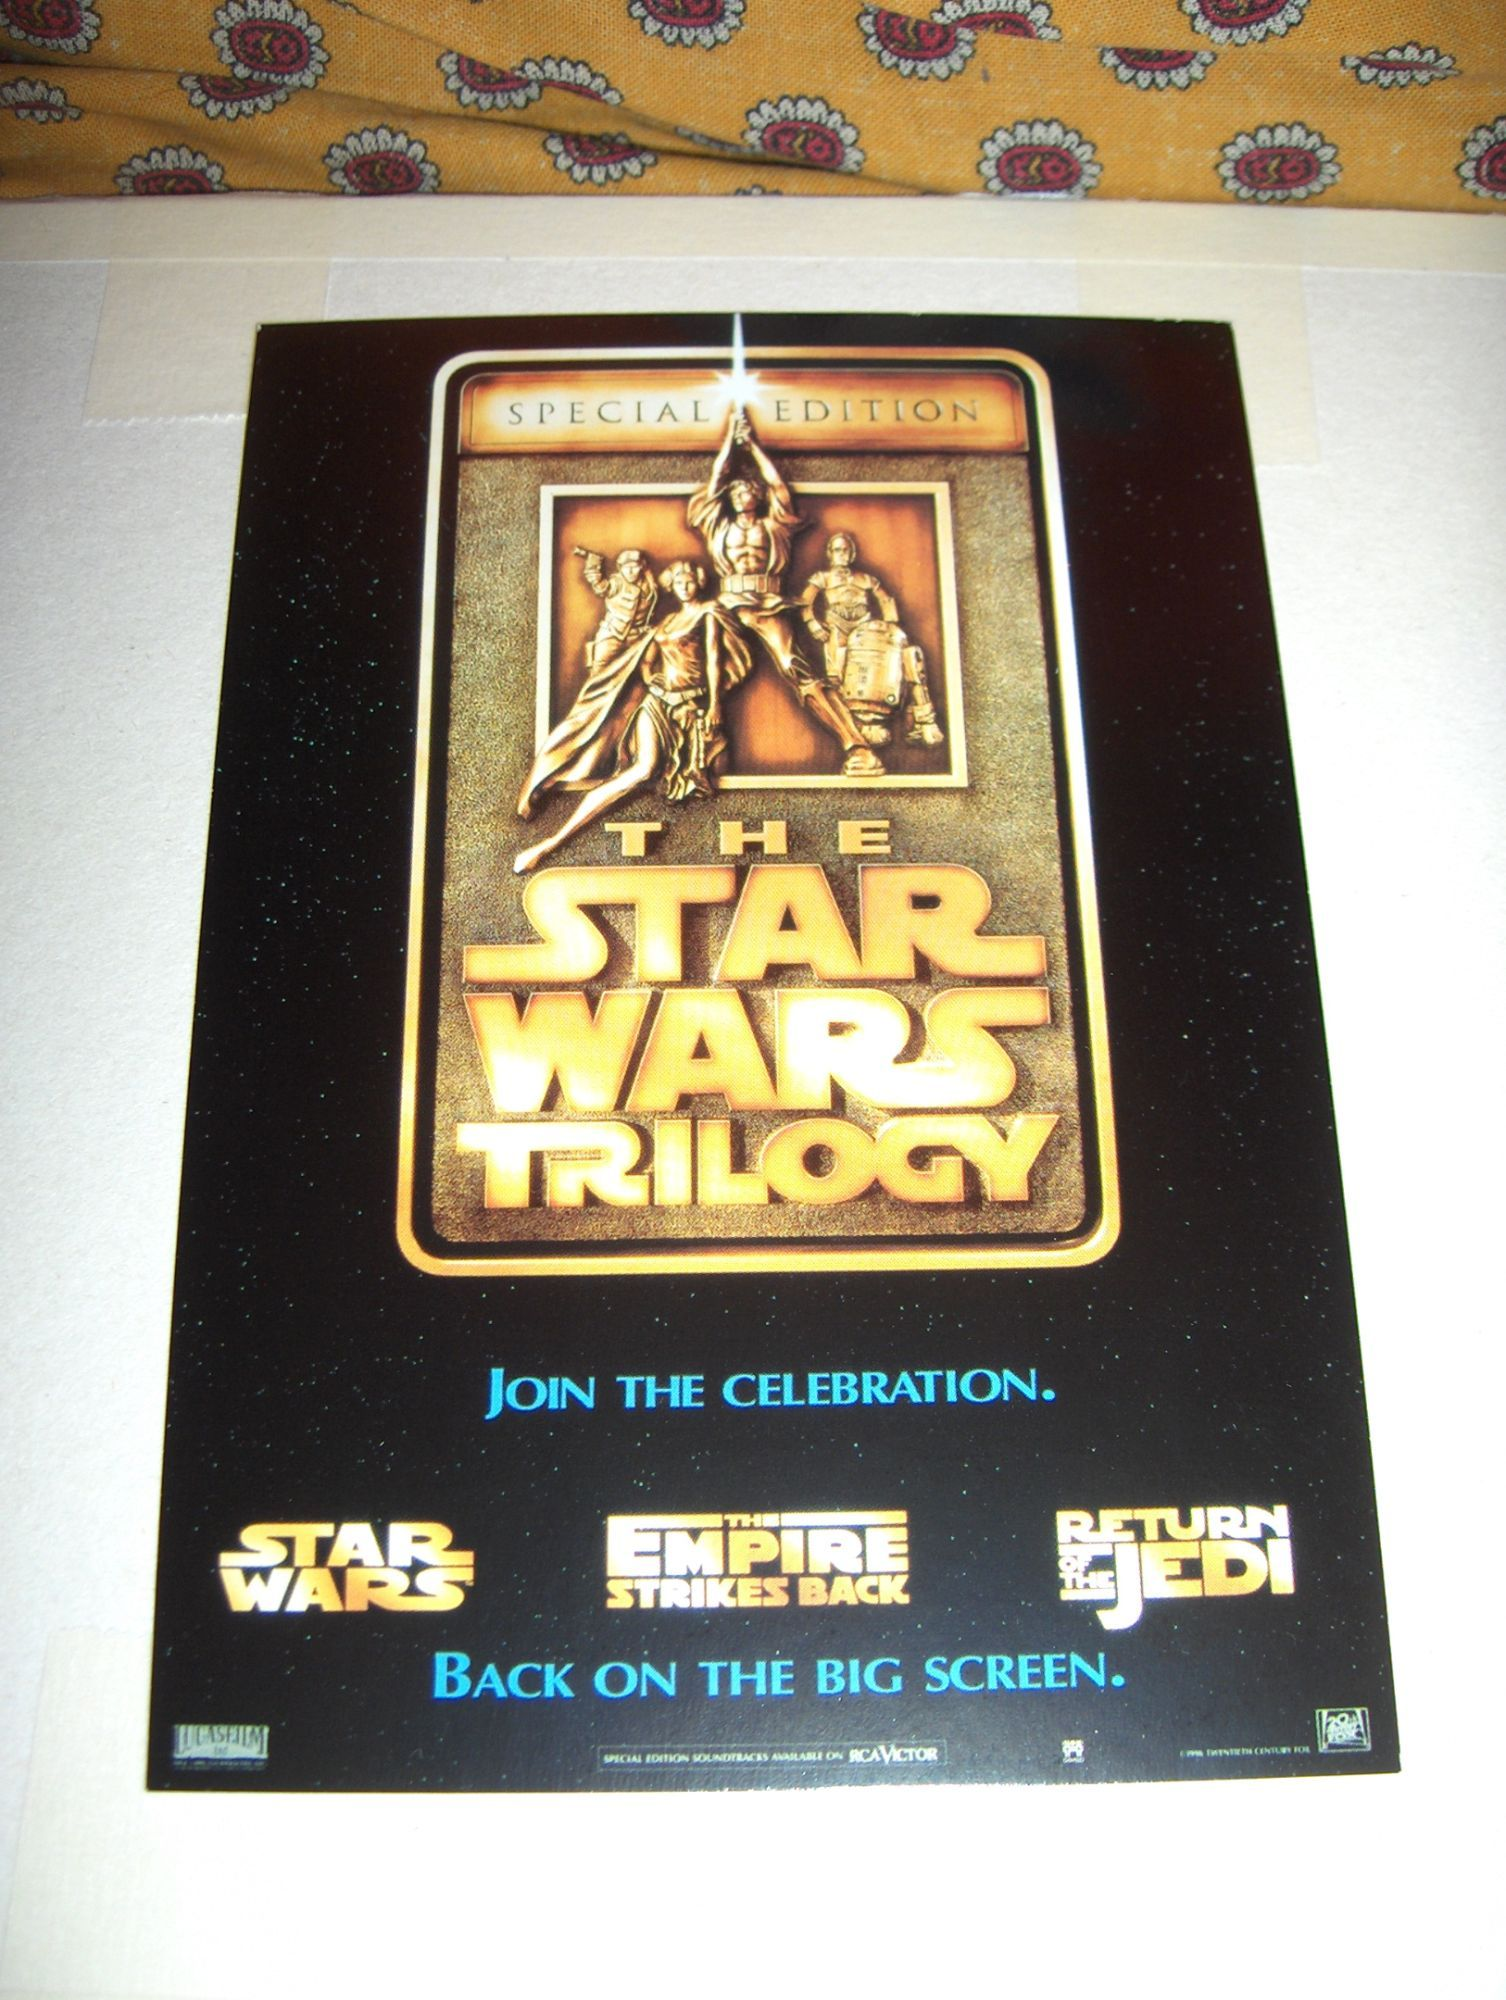 Star Wars Special Edition The Star Wars Trilogy